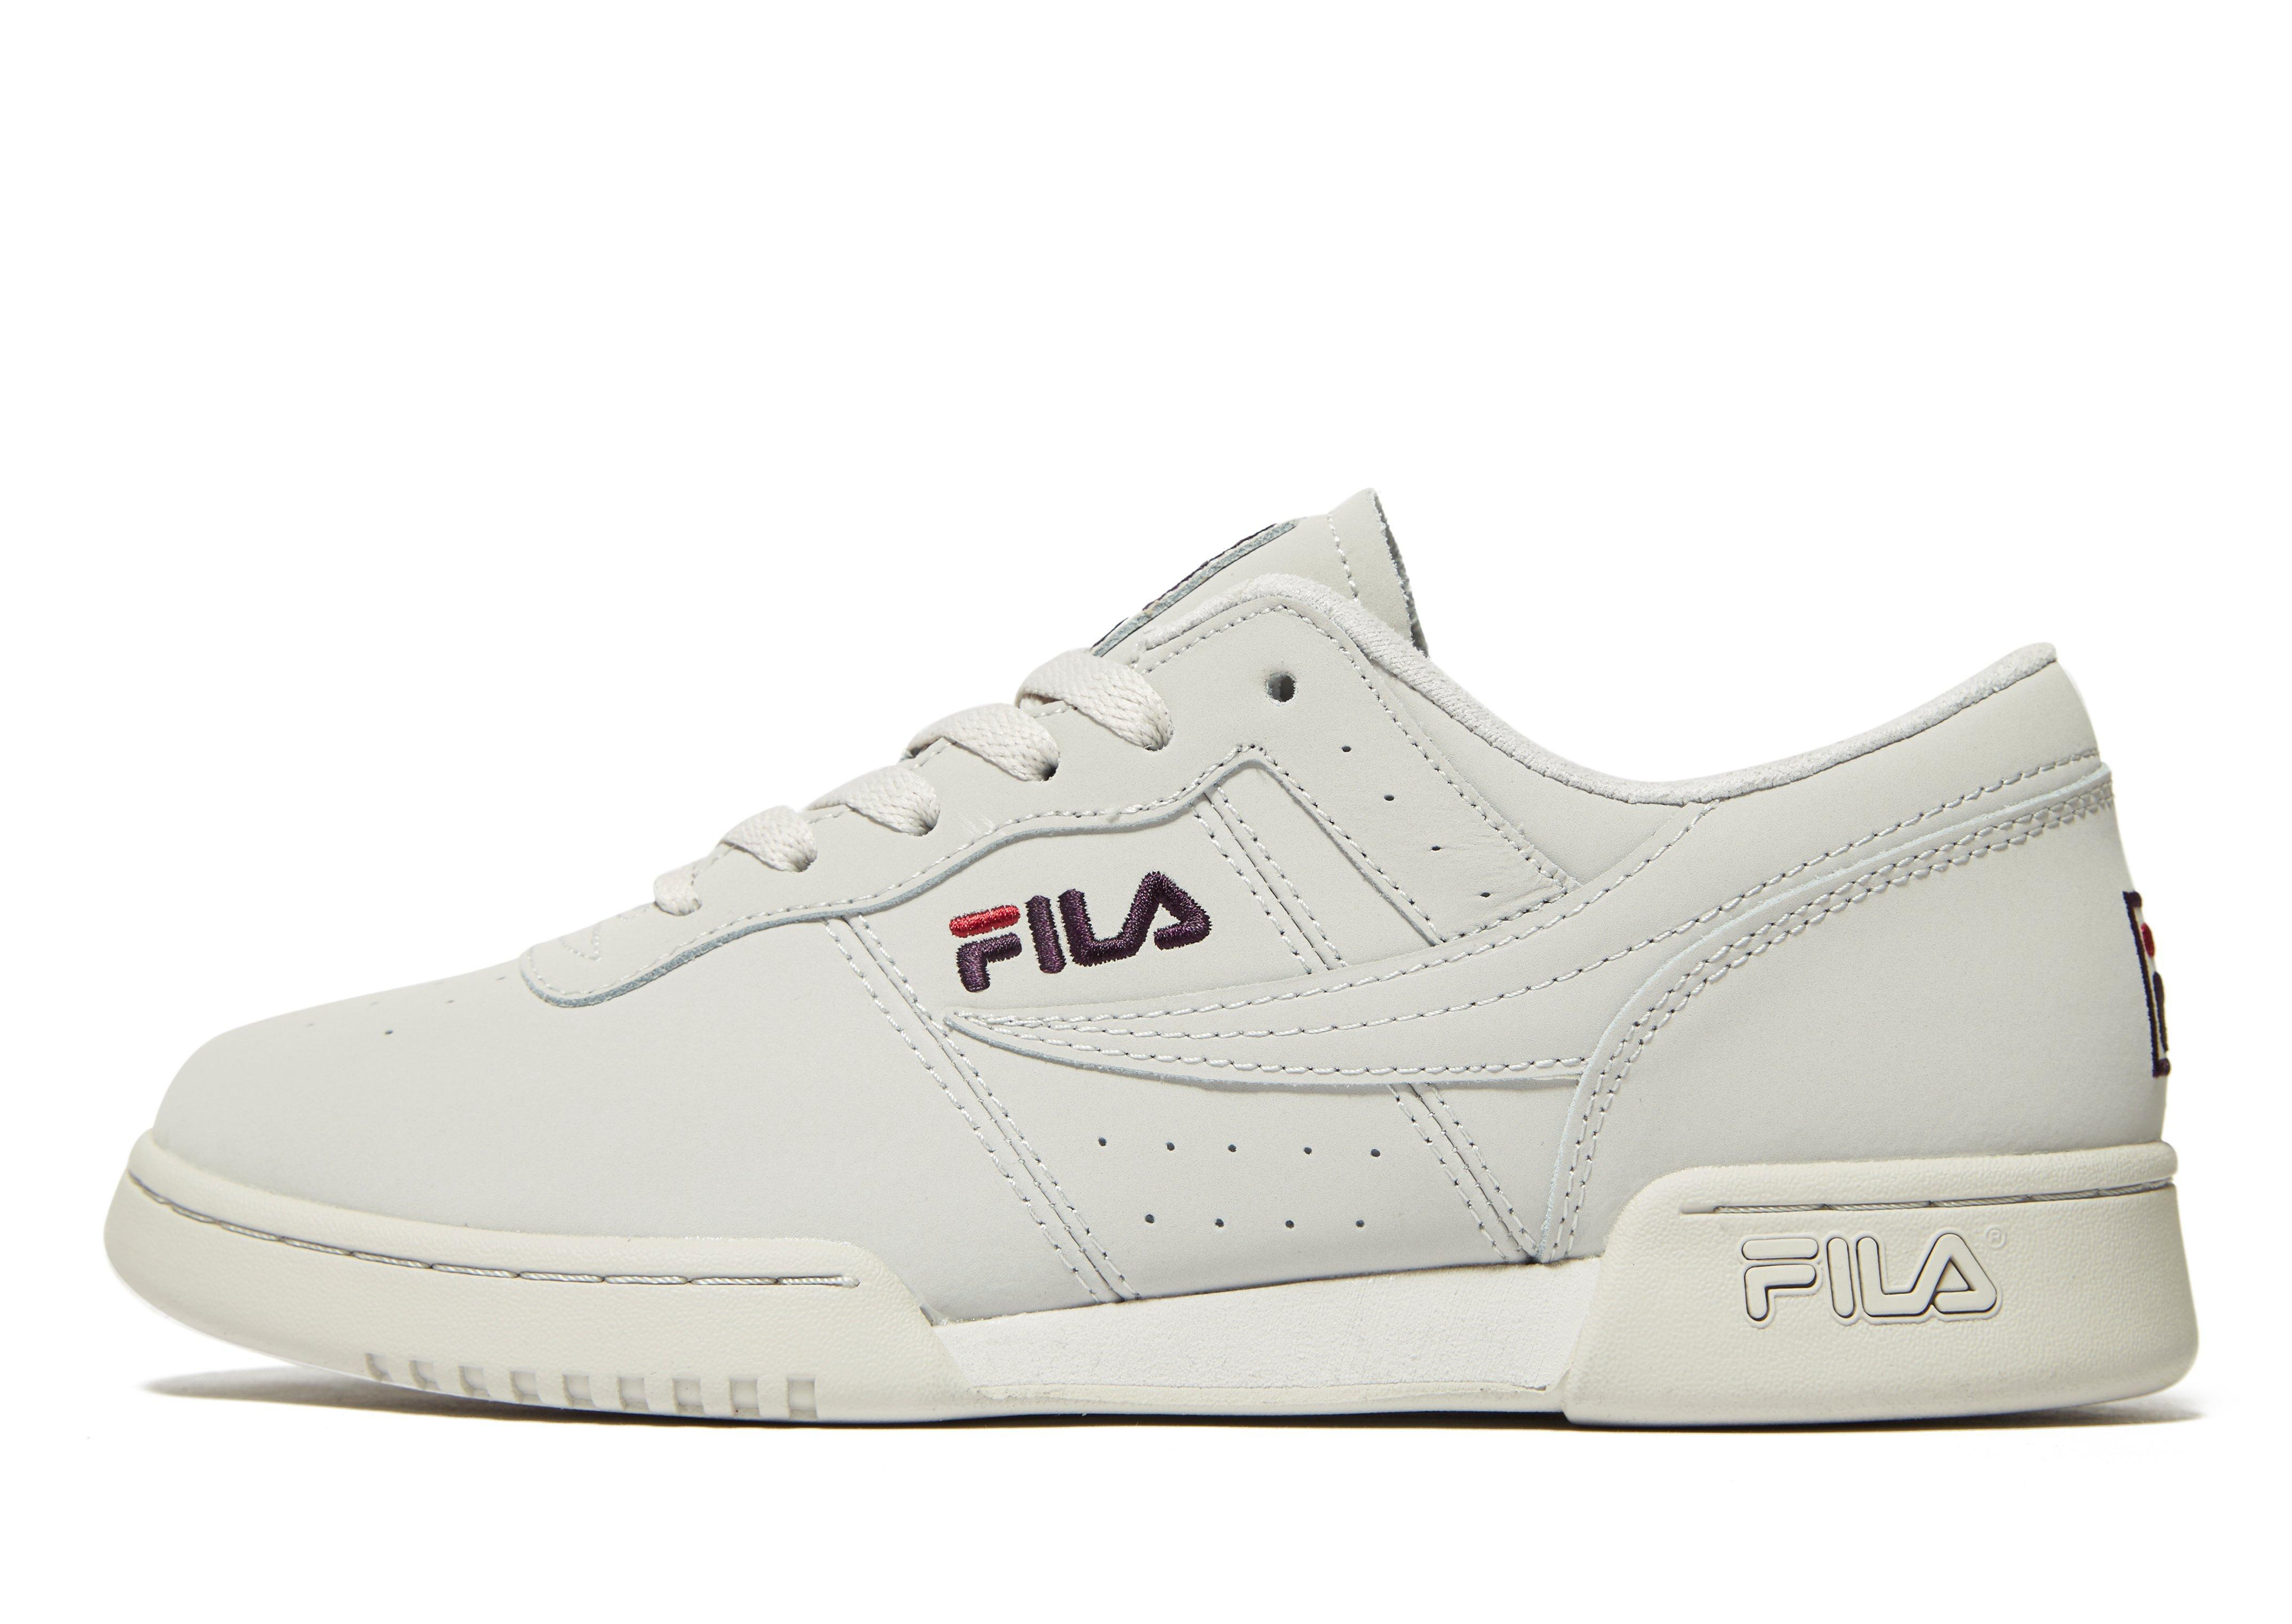 fila shoes jd sports trainers sale